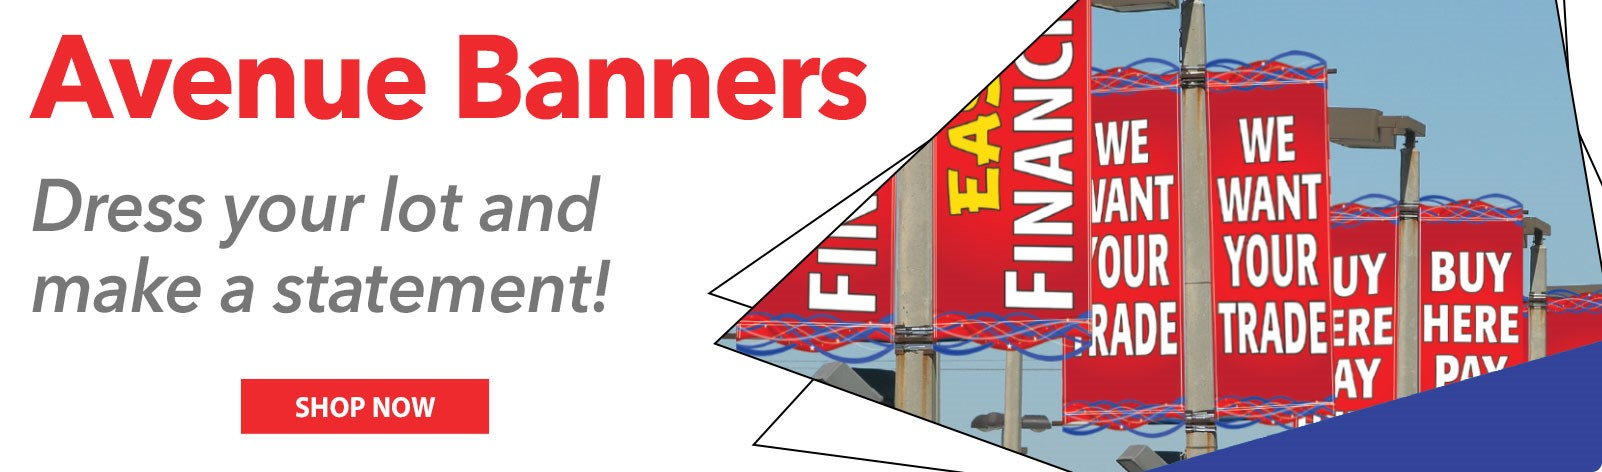 Avenue Banners - Dress your car lot and make a statement!